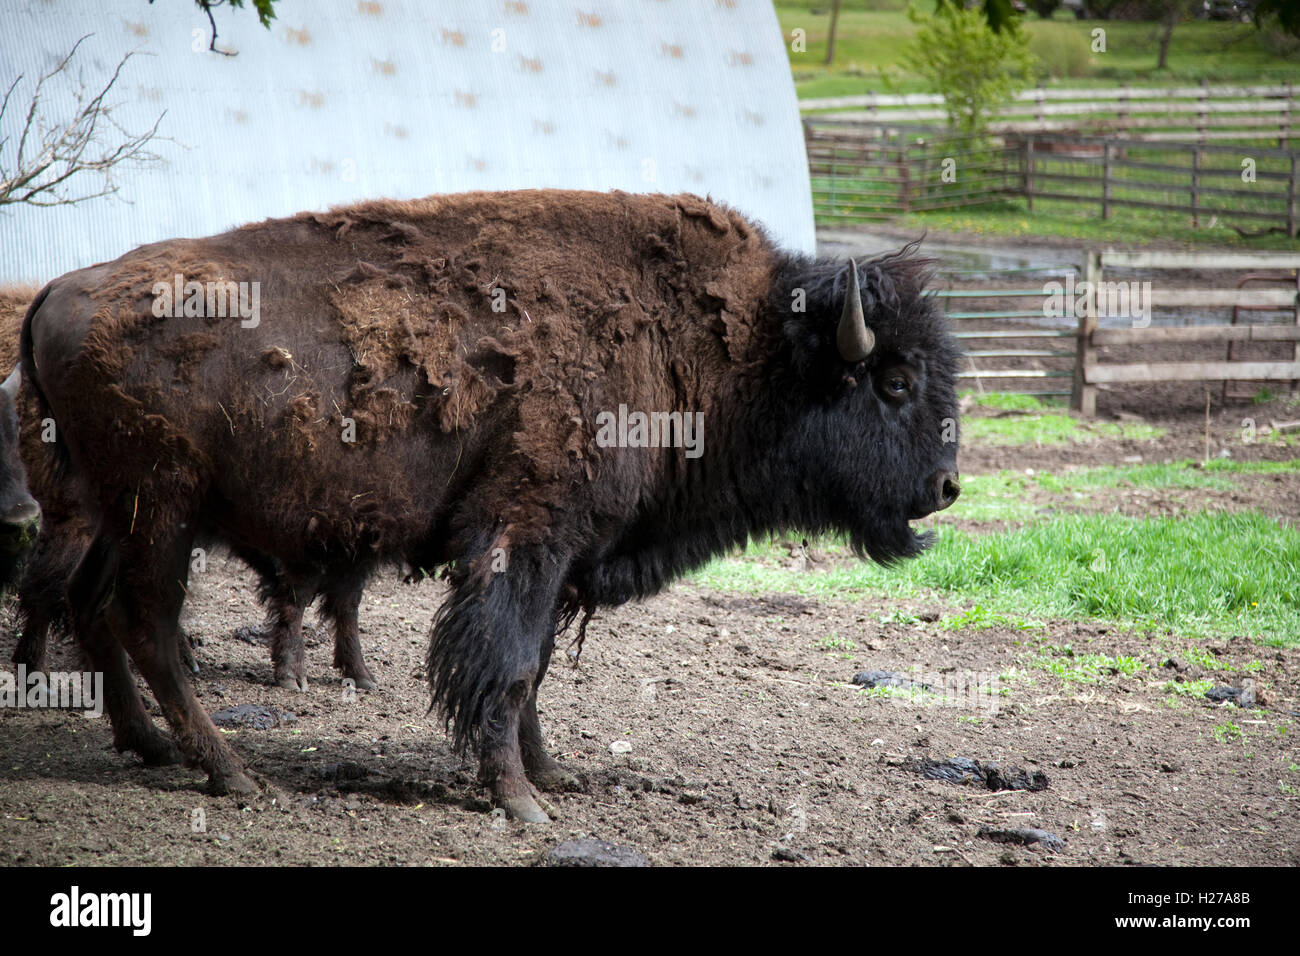 Buffalo an American symbol fenced in on a ranch. Pierz Minnesota MN USA - Stock Image